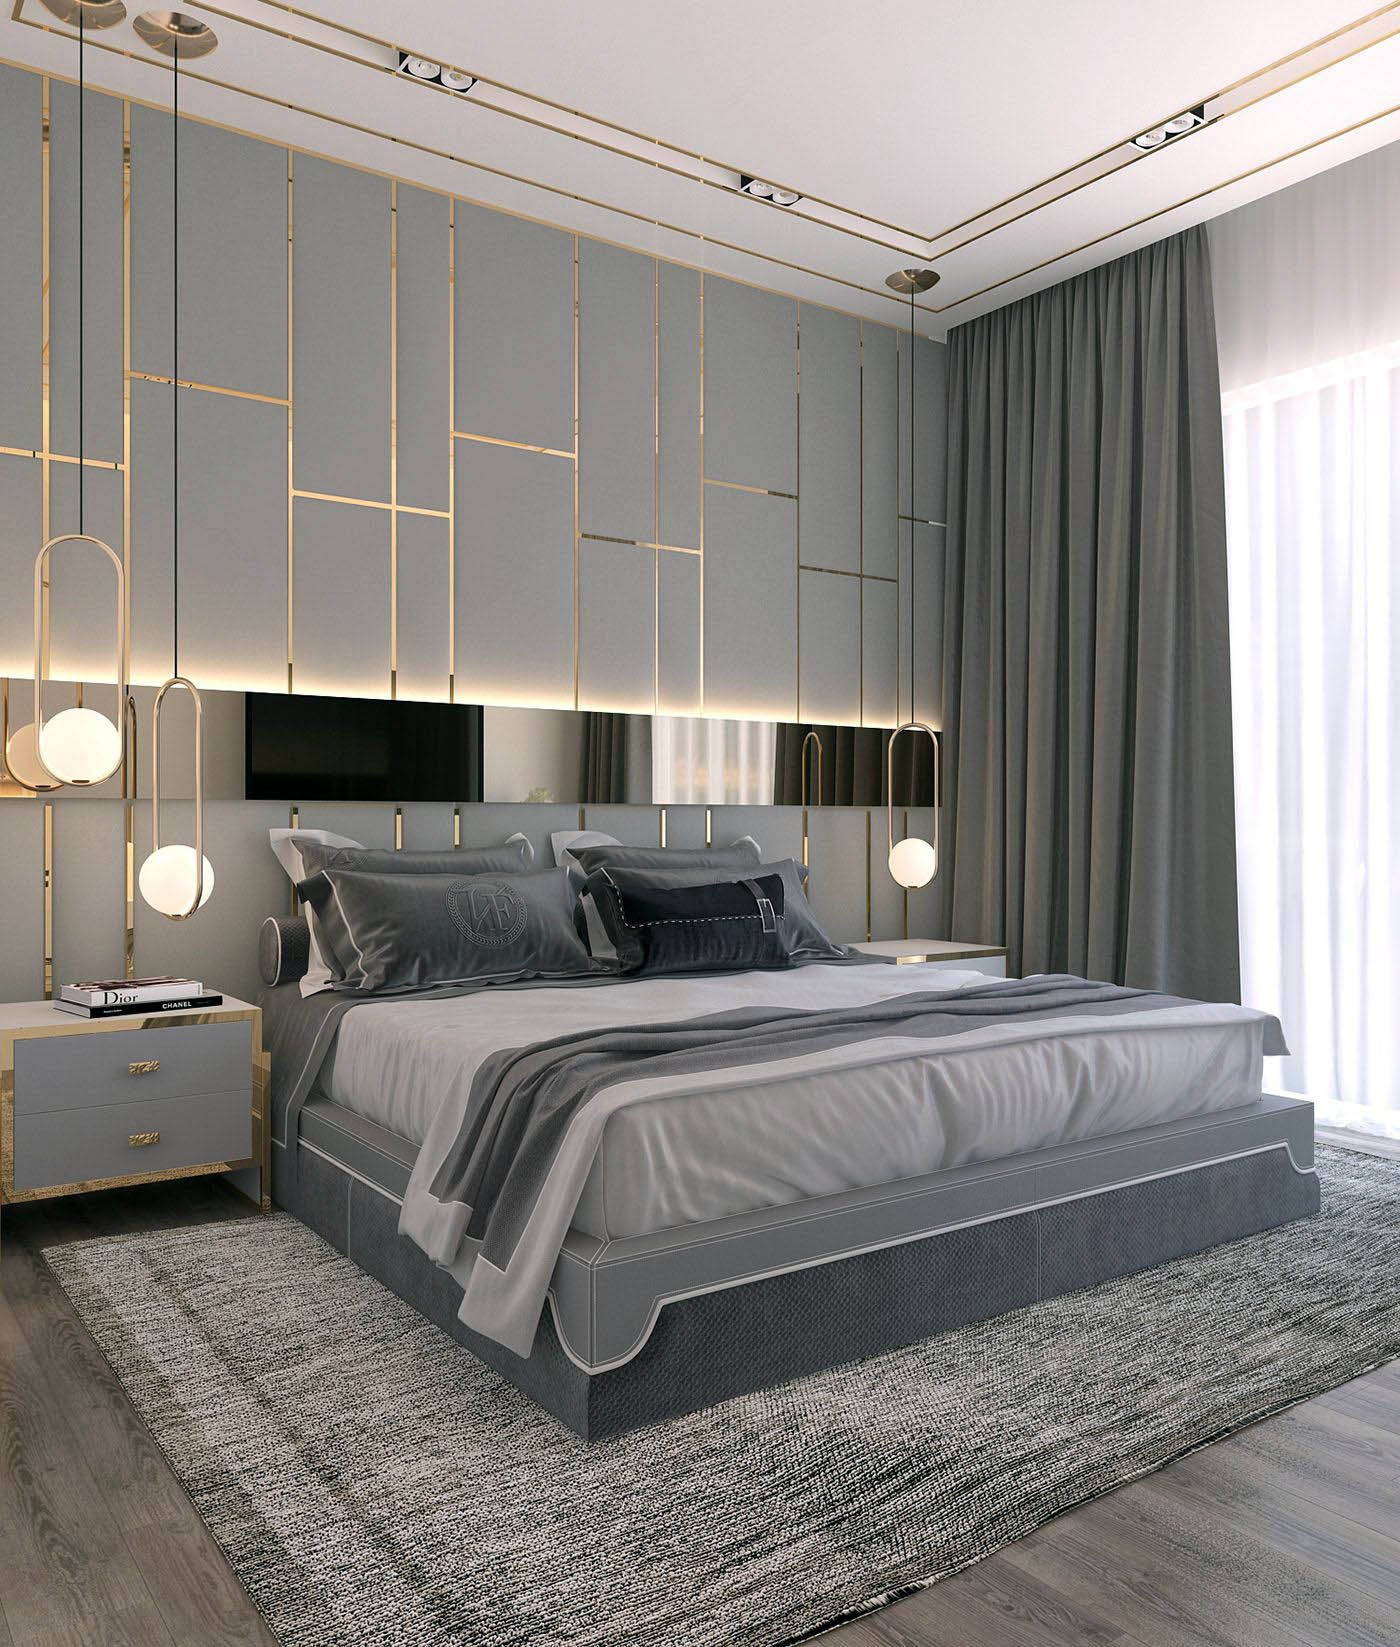 Good Master Bedroom Ideas And Colors Made Easy Simple Bedroom Design Luxury Bedroom Master Modern Style Bedroom